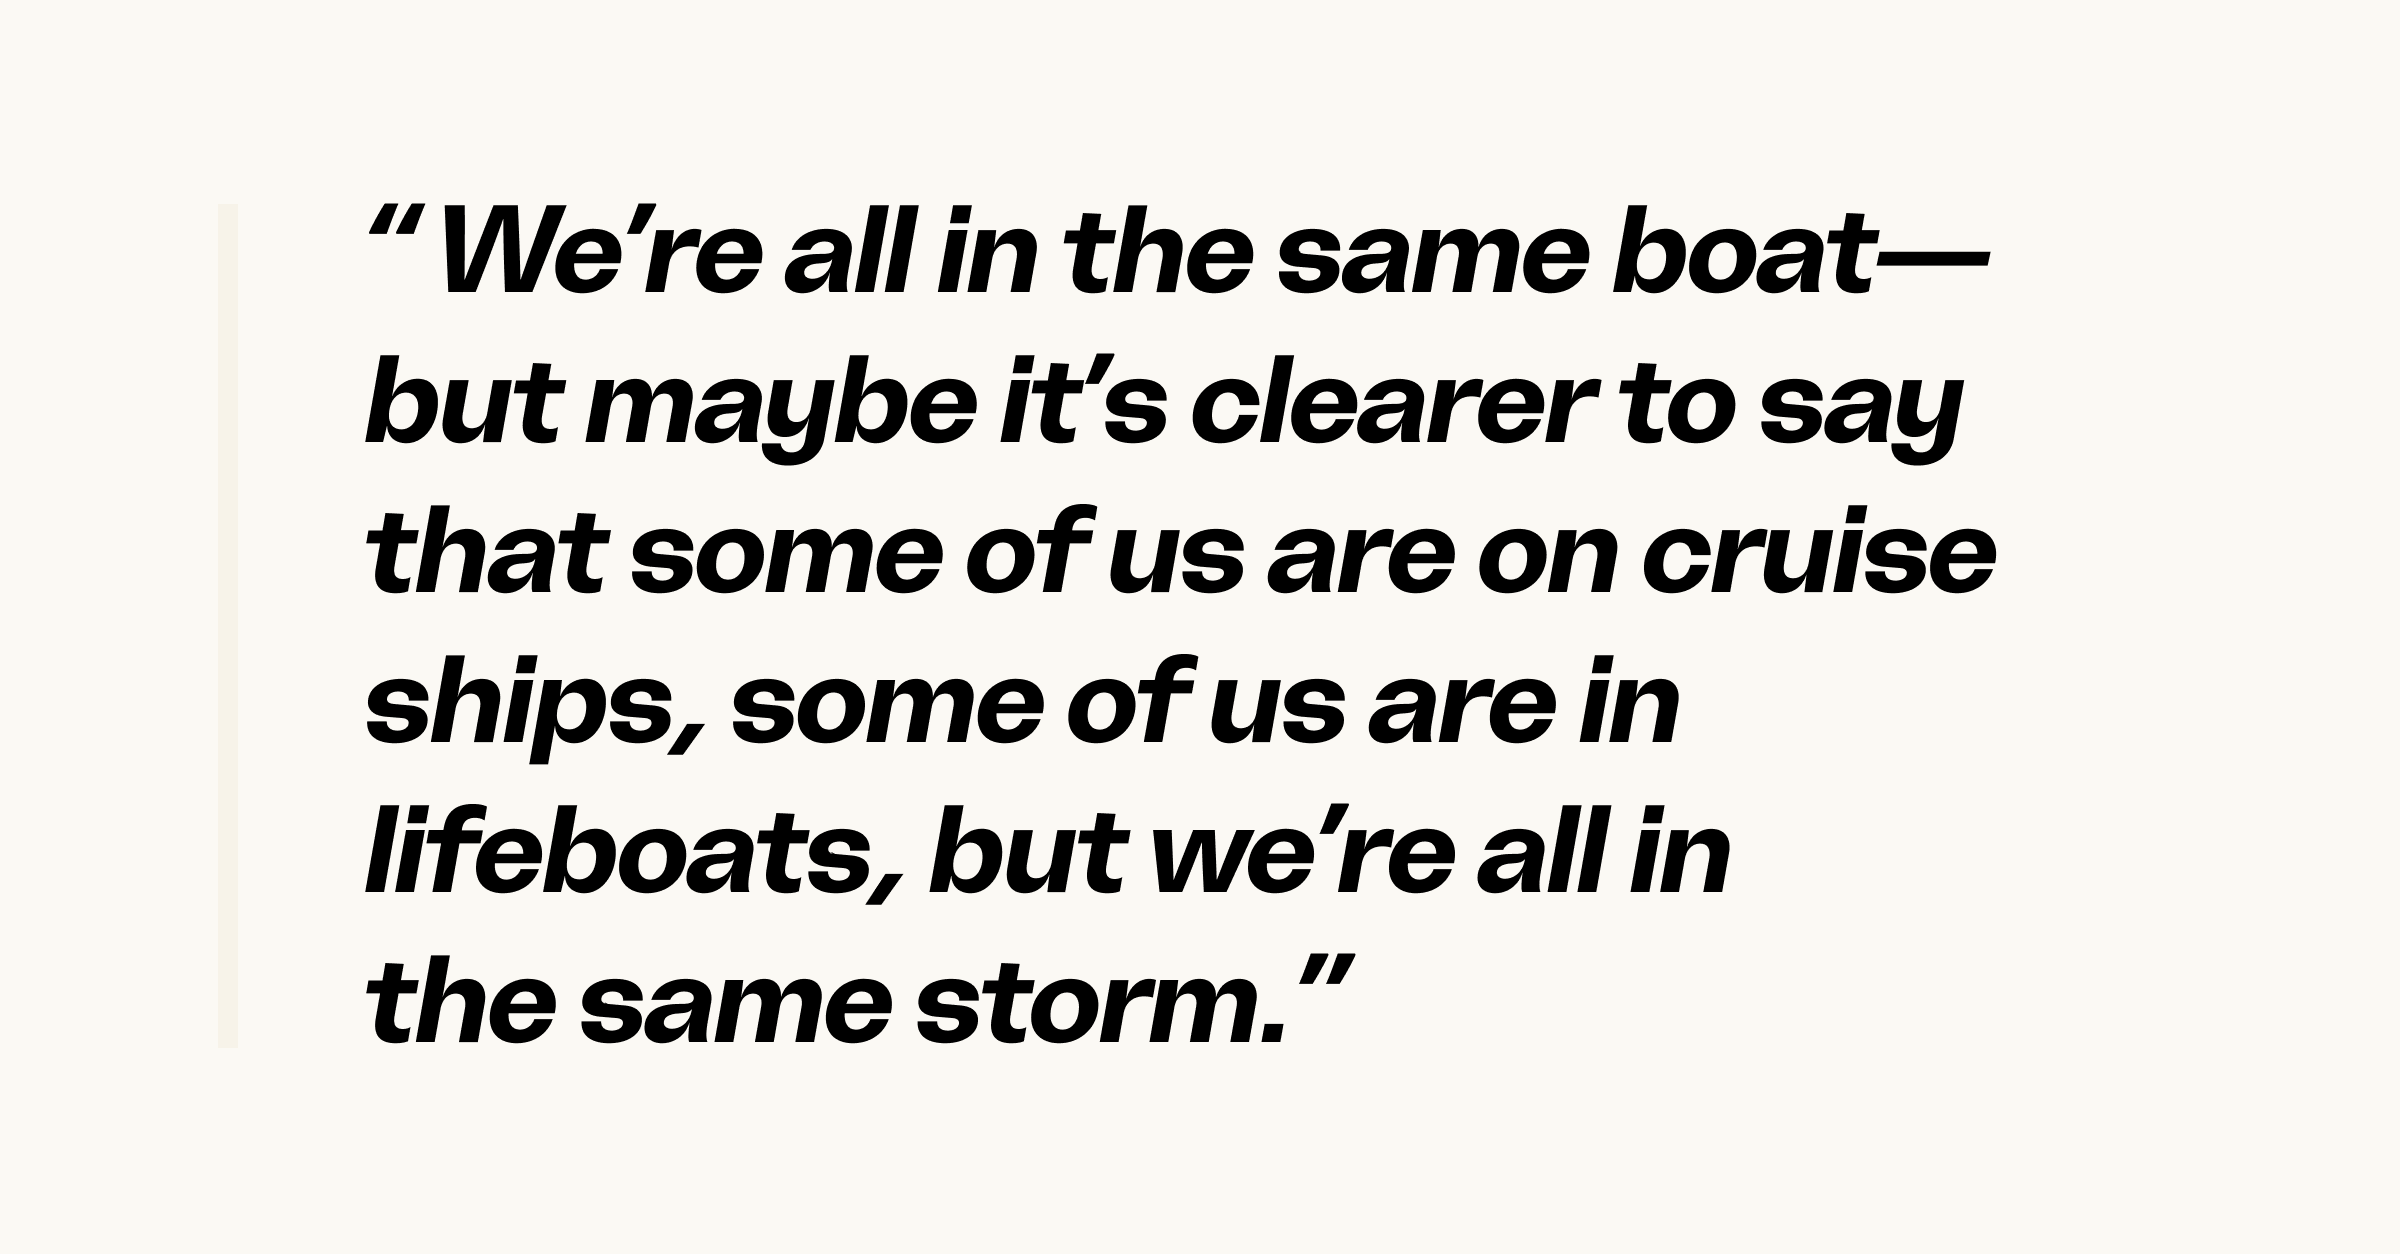 Quote: we're all in the same boat—but maybe it's clearer to say that some of us are on cruise ships, some of us are in lifeboats, but we're all in the same storm.